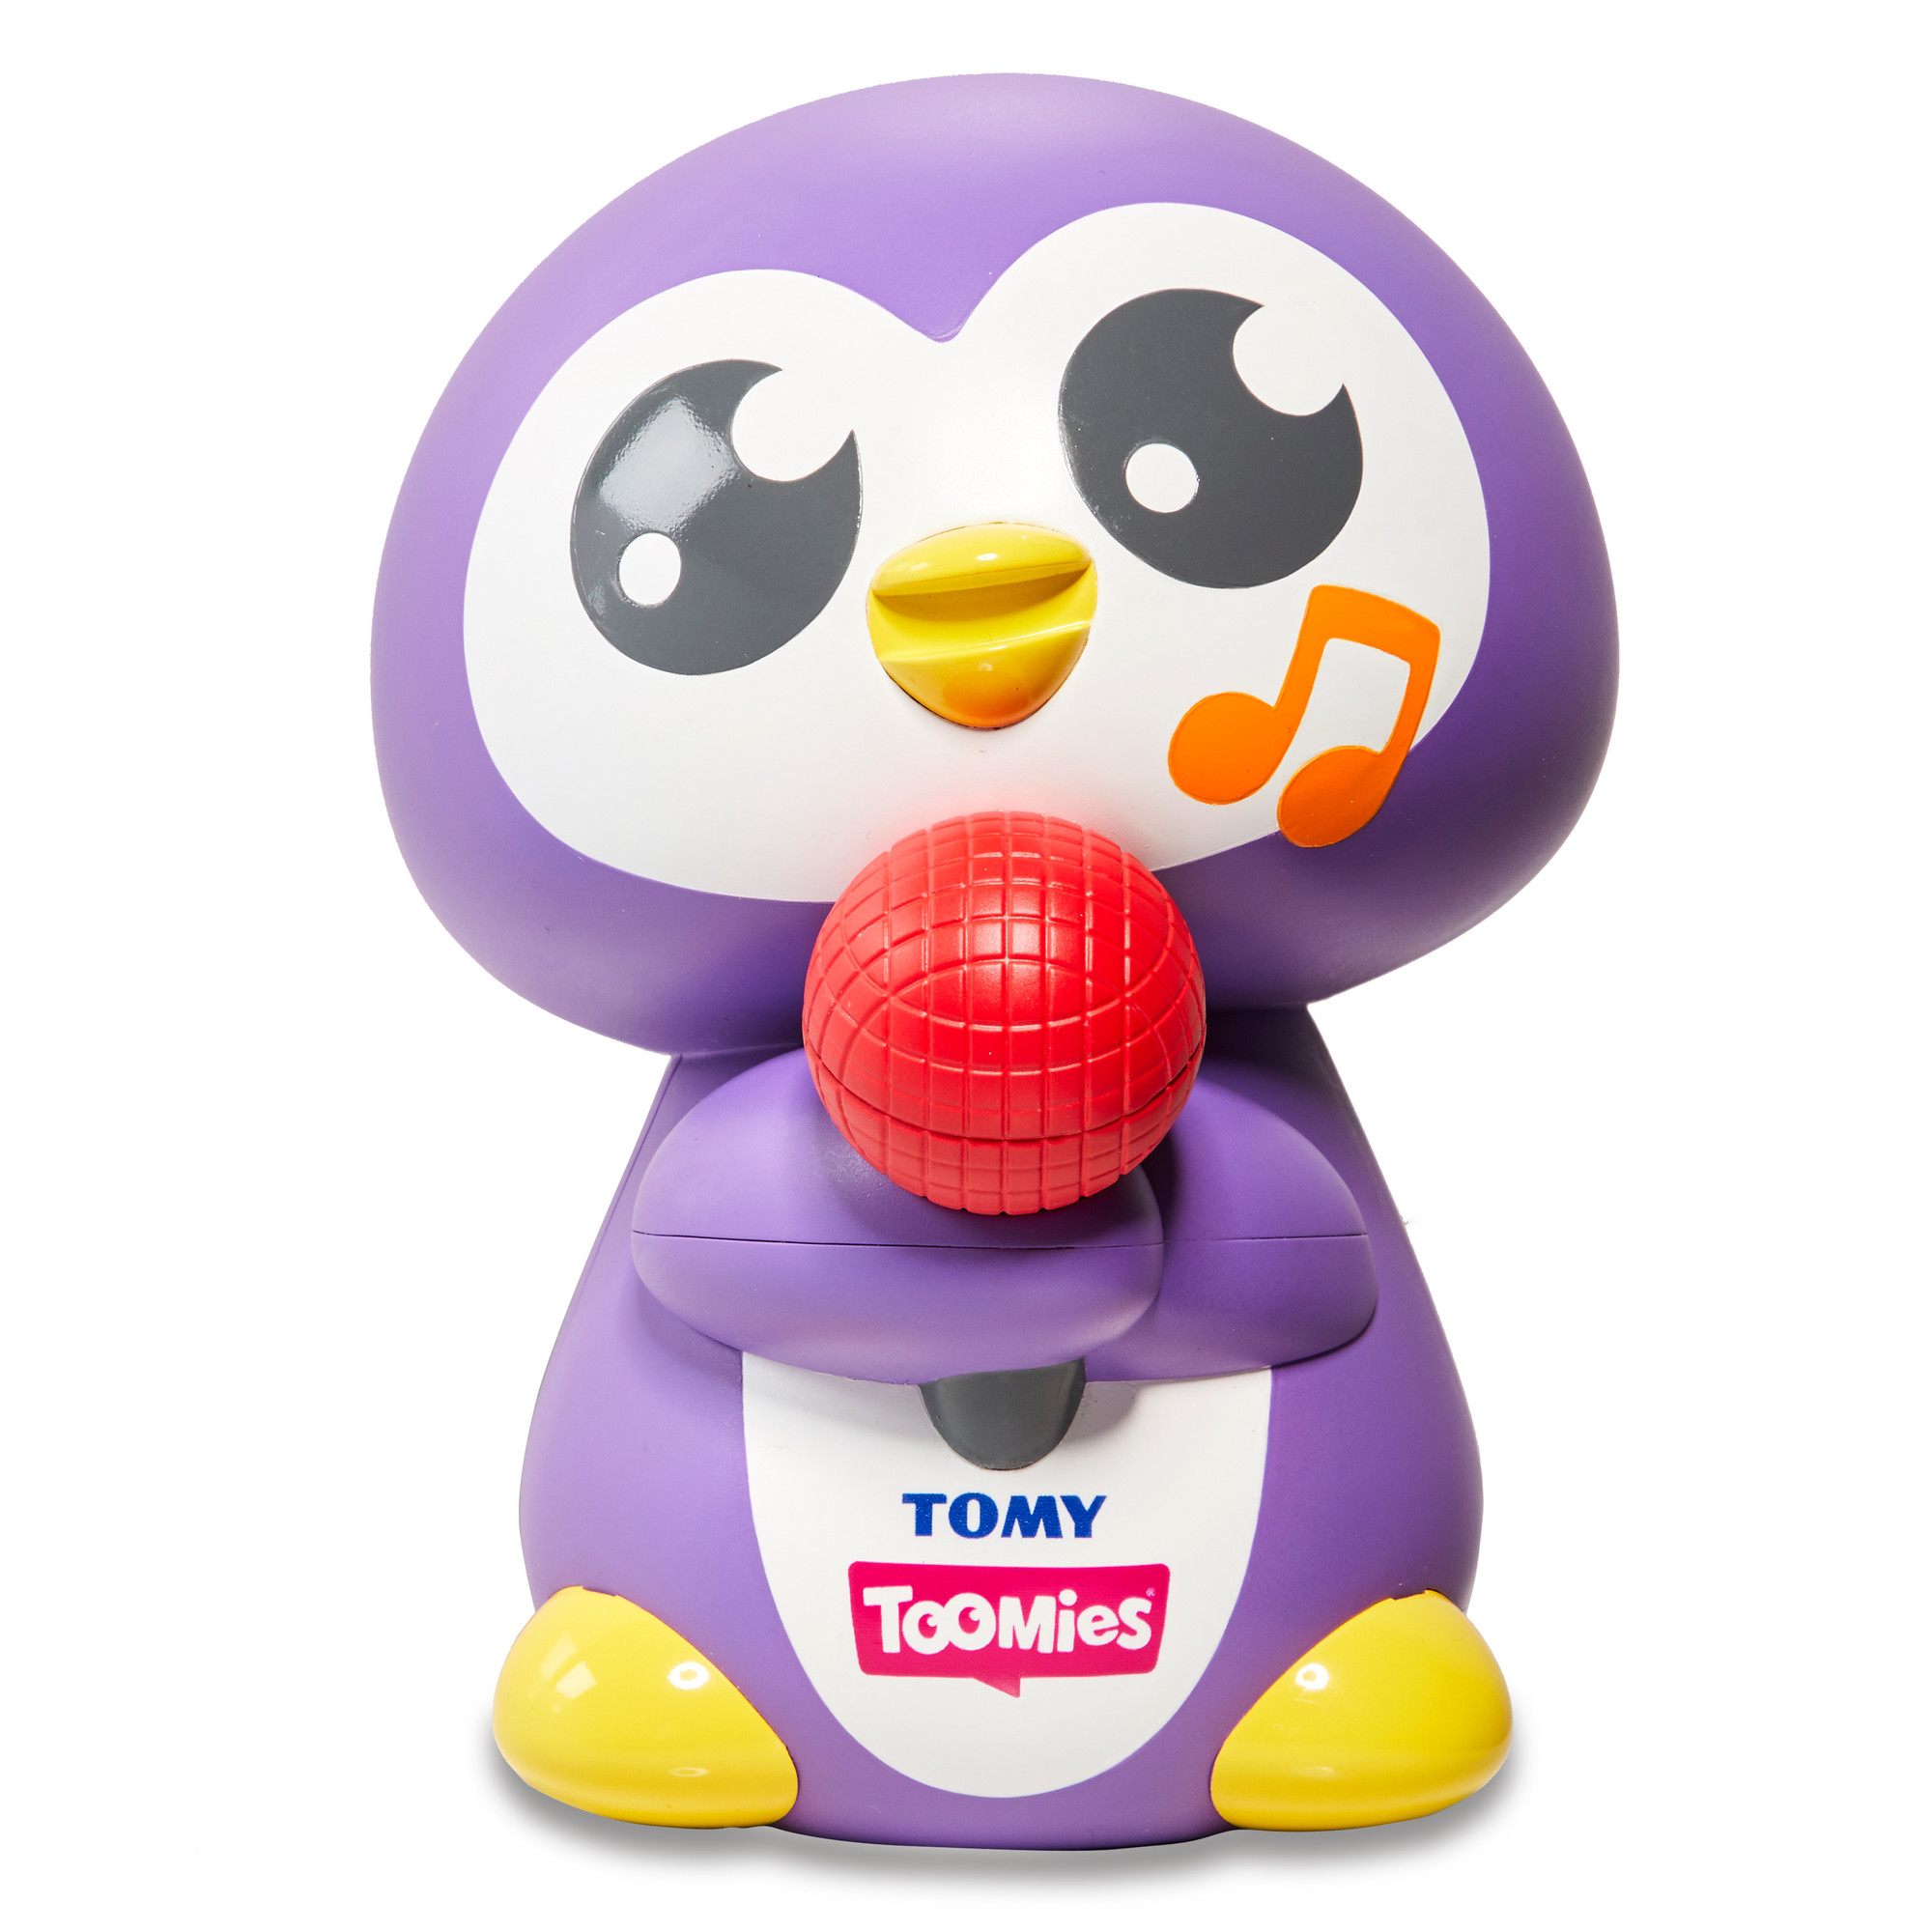 Tomy Toomies Tuneless Penguin Toy